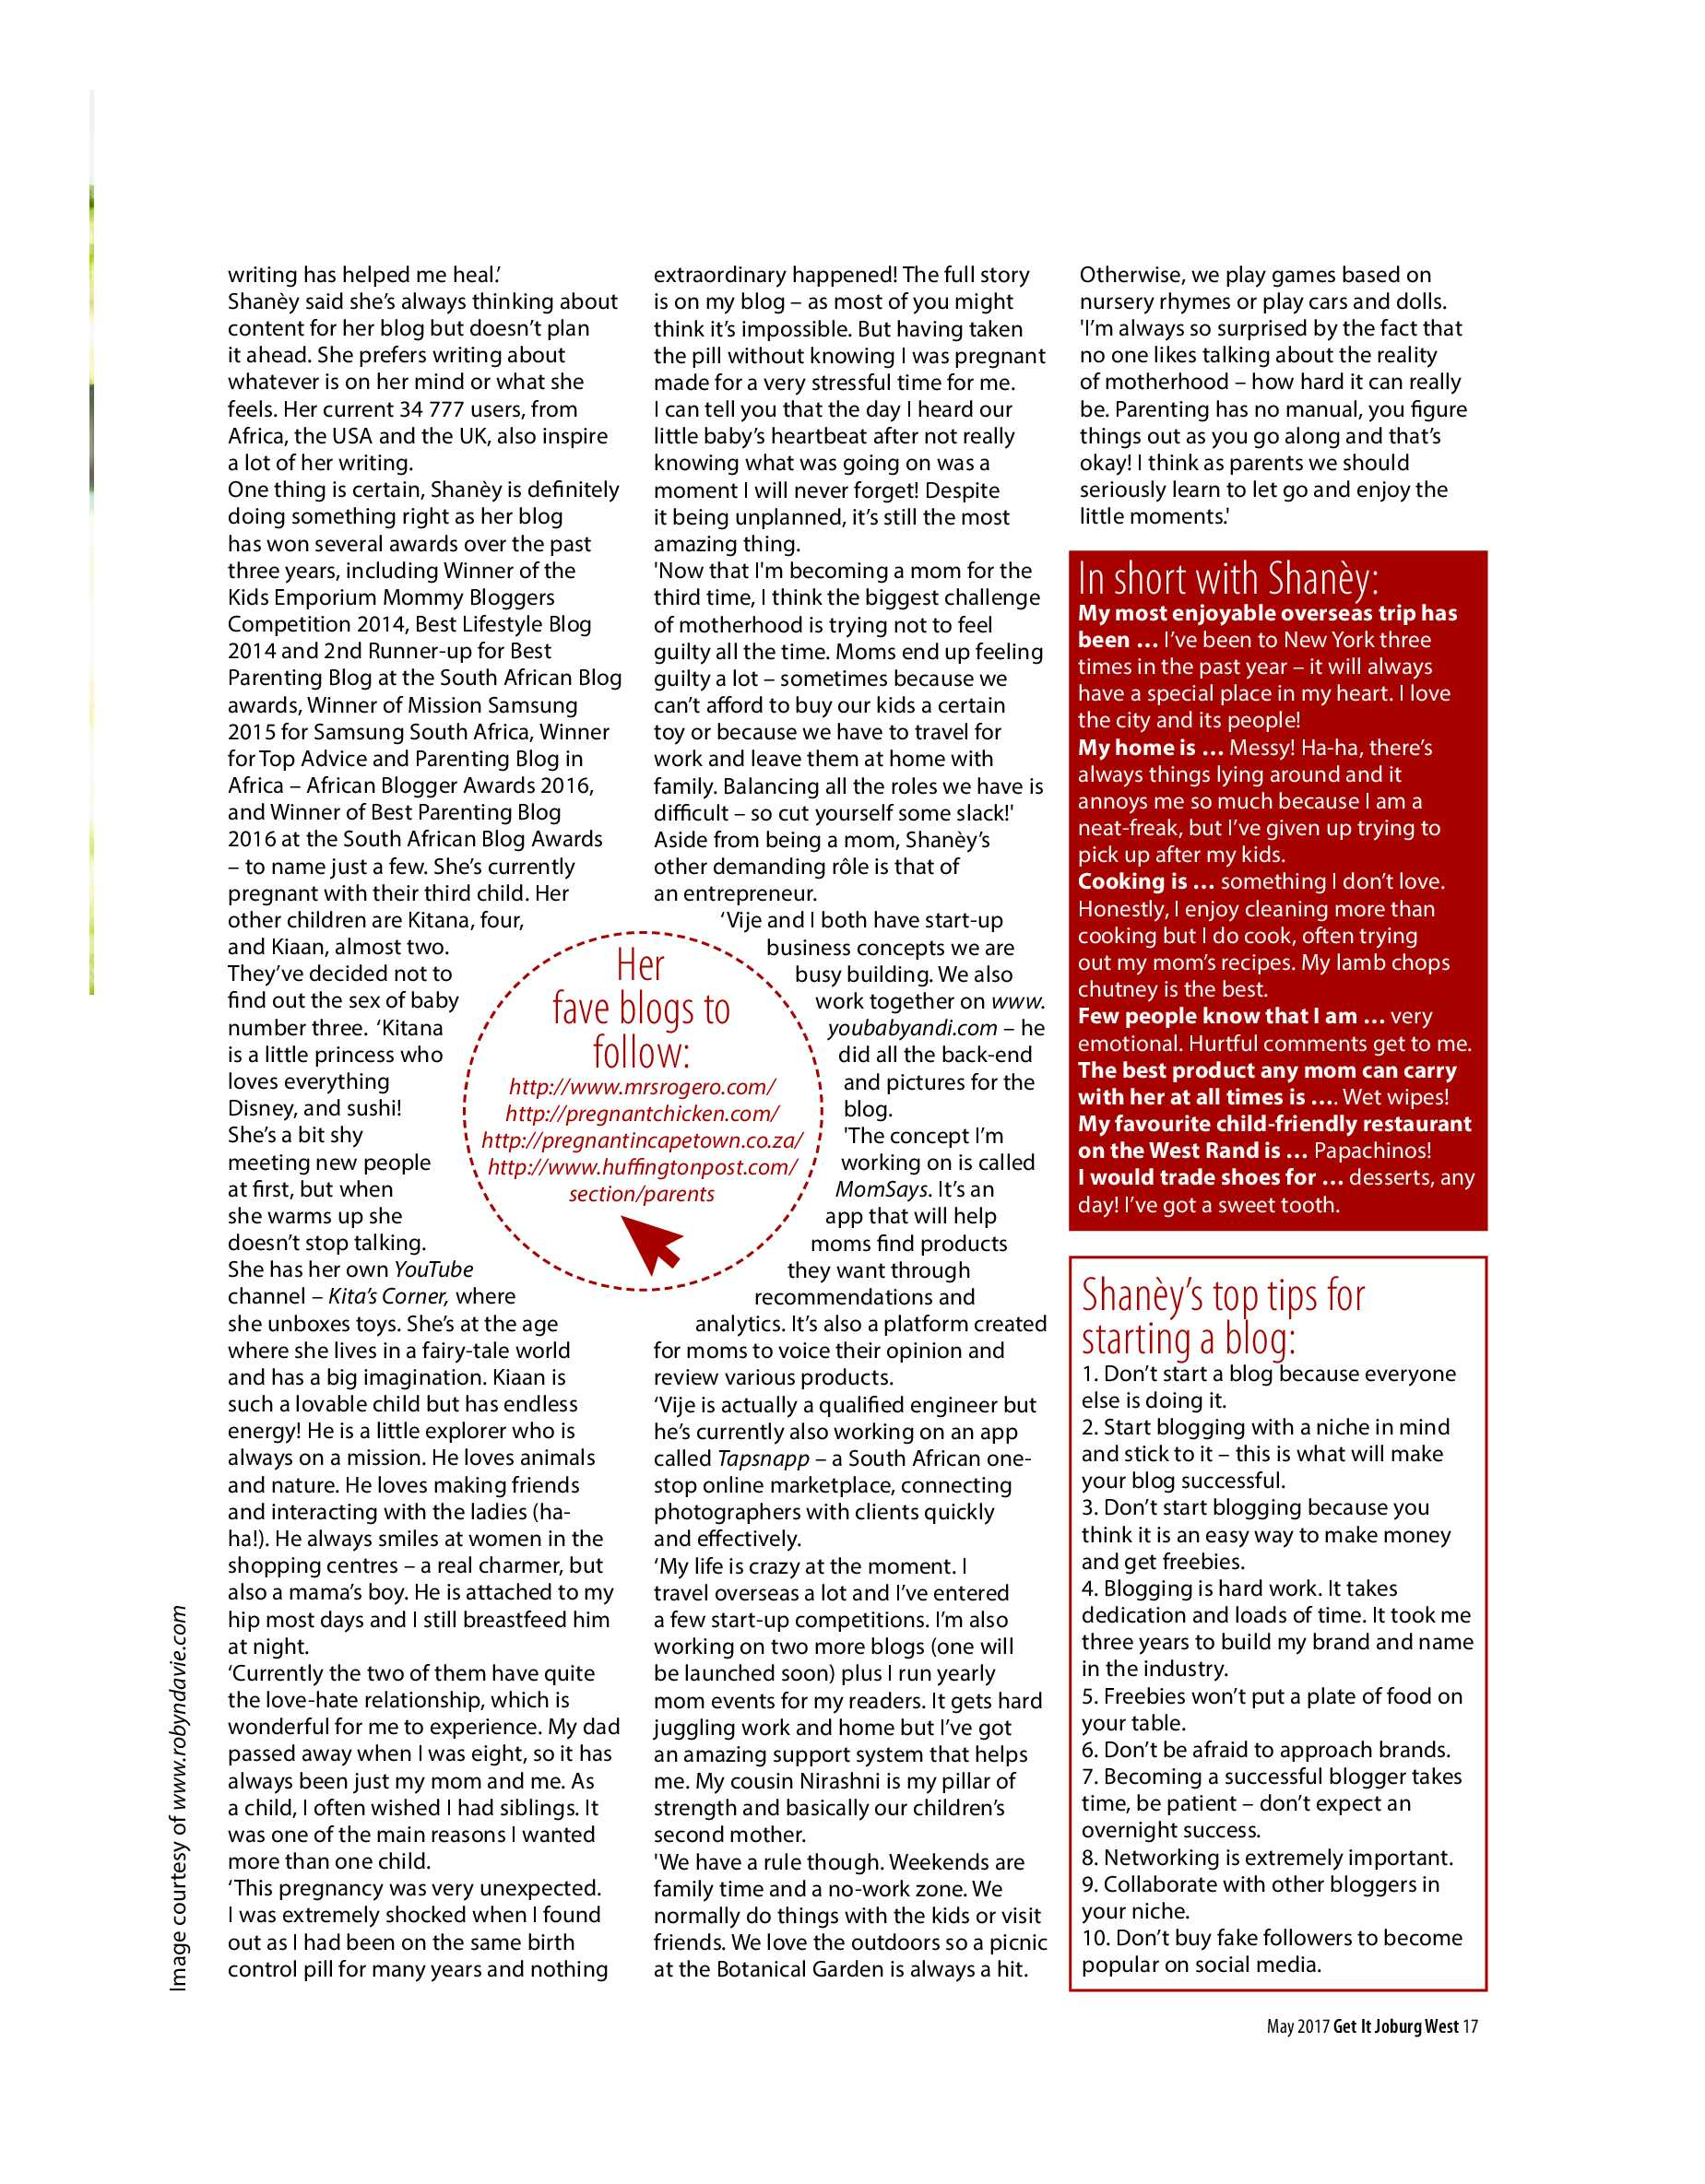 get-joburg-west-may-2017-epapers-page-17